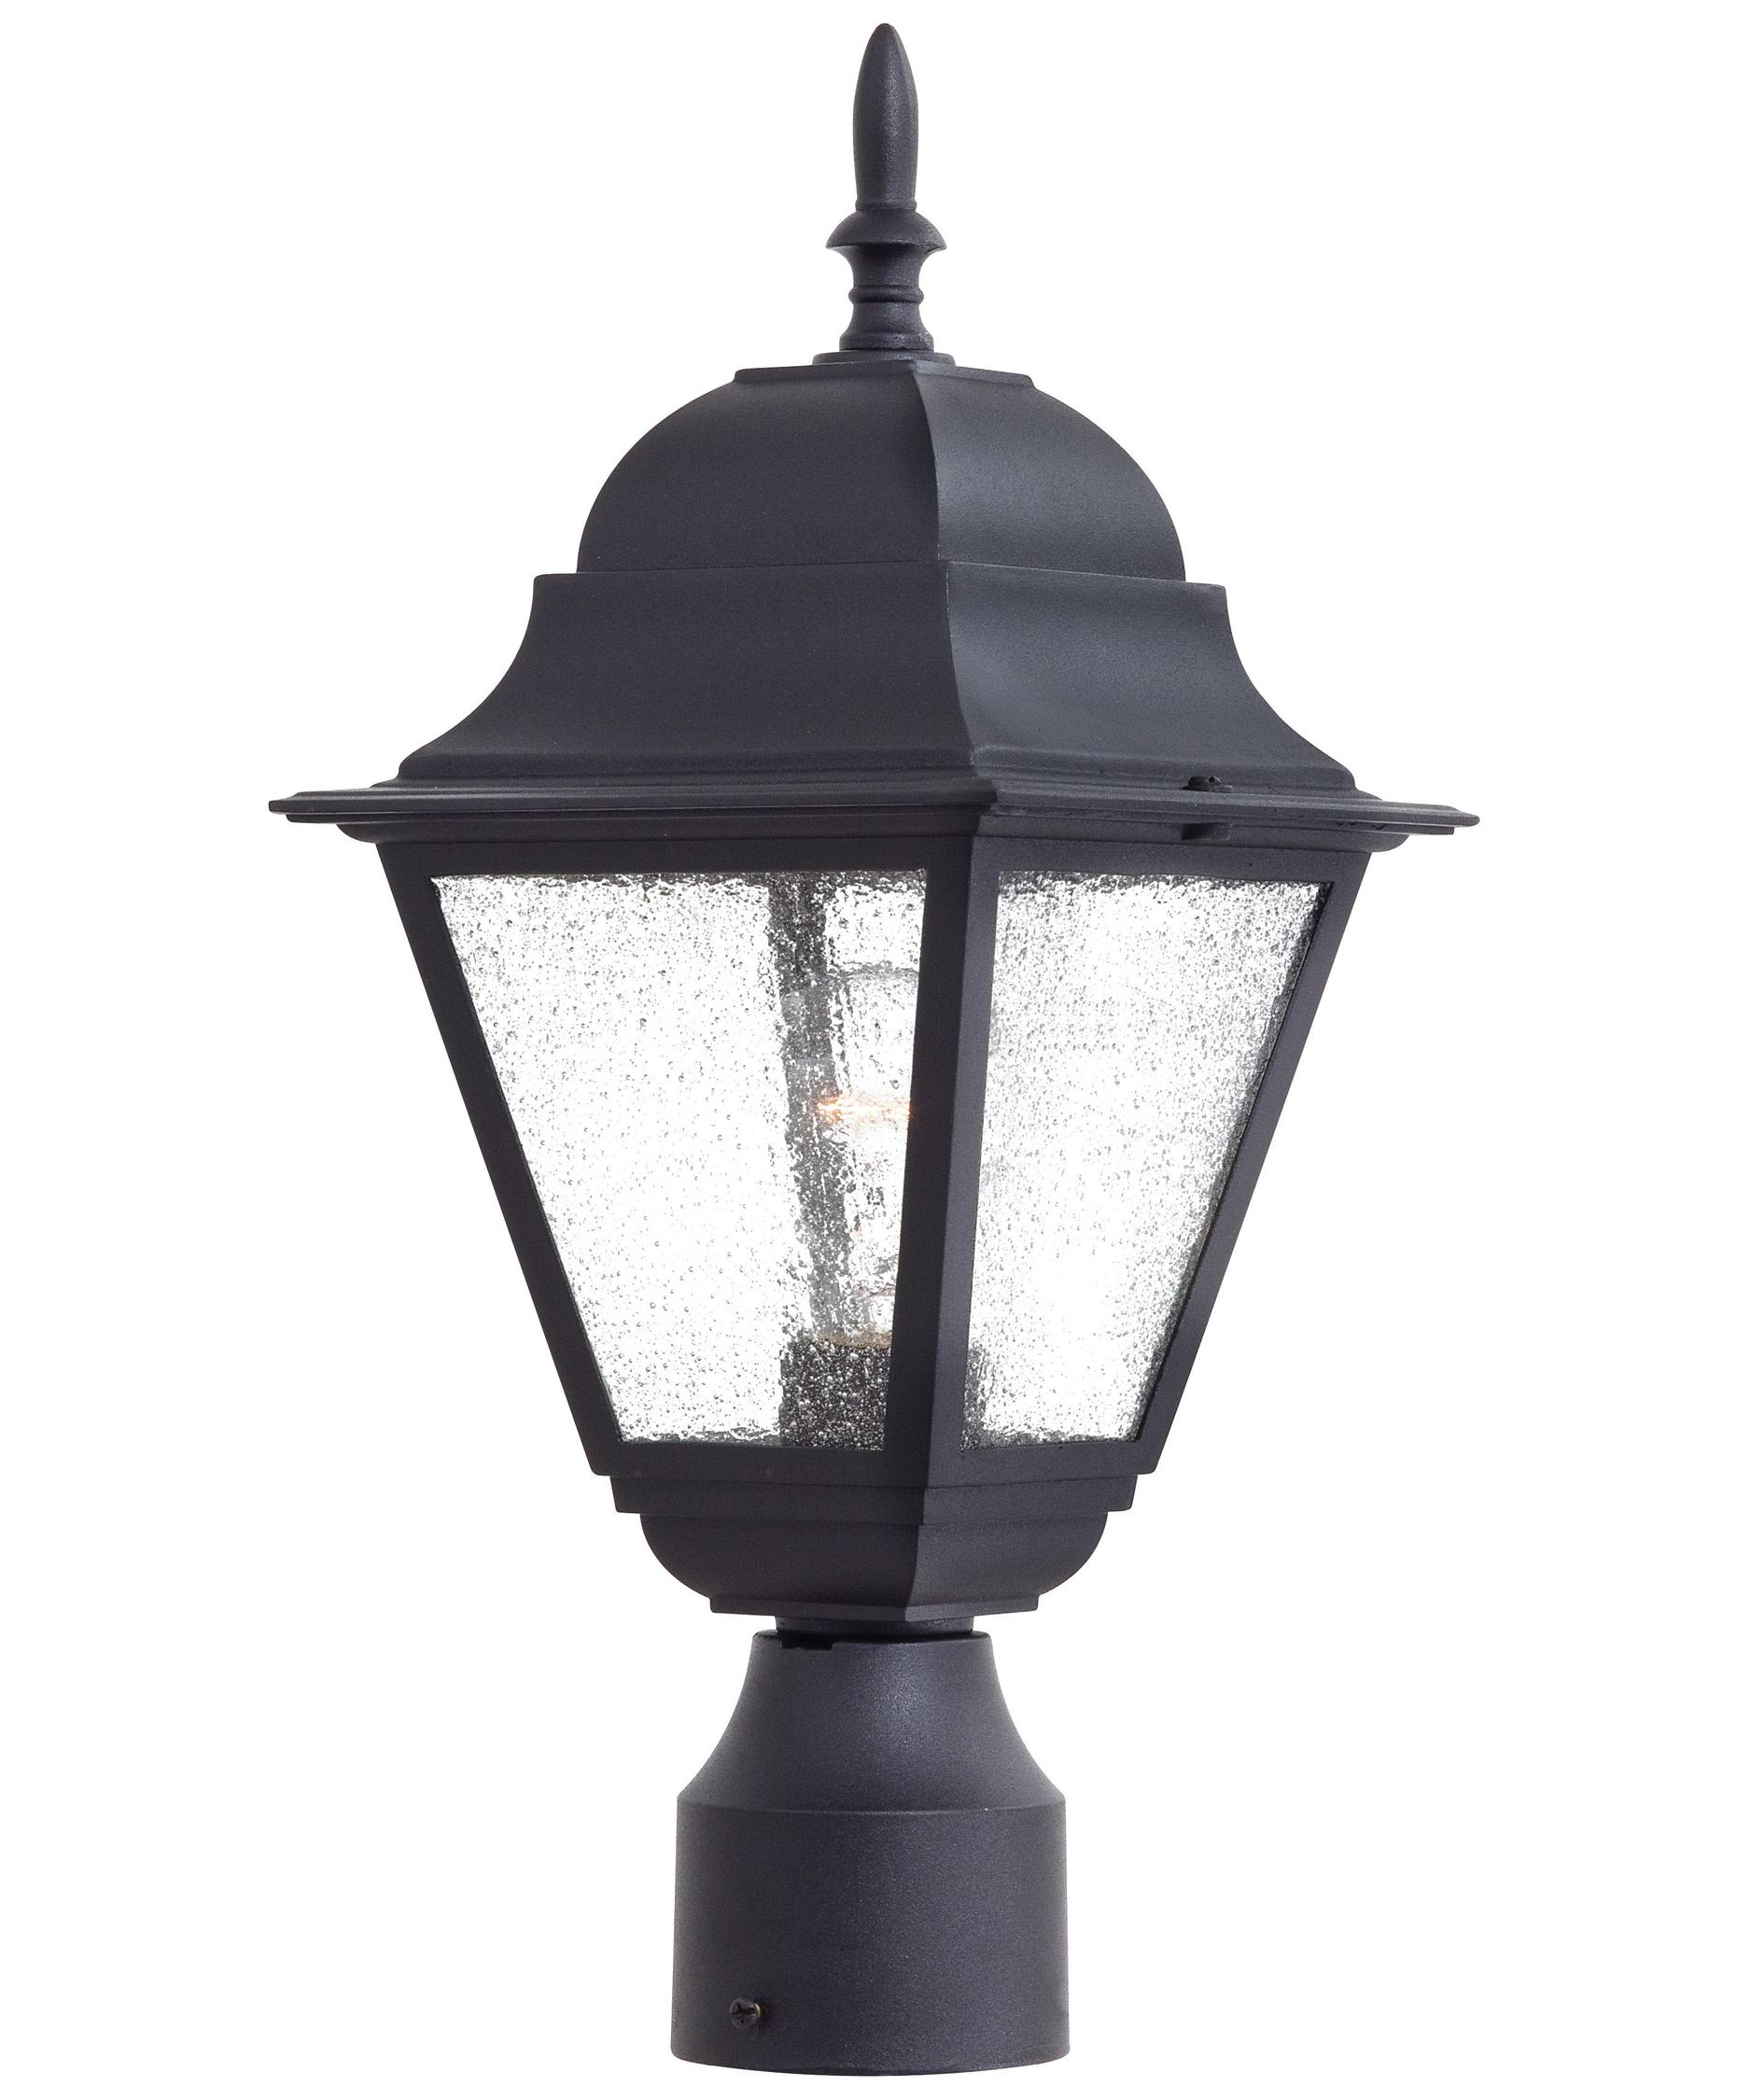 Wood outdoor lamp post - Bay Hill 8 Inch Wide 1 Light Outdoor Post Lamp